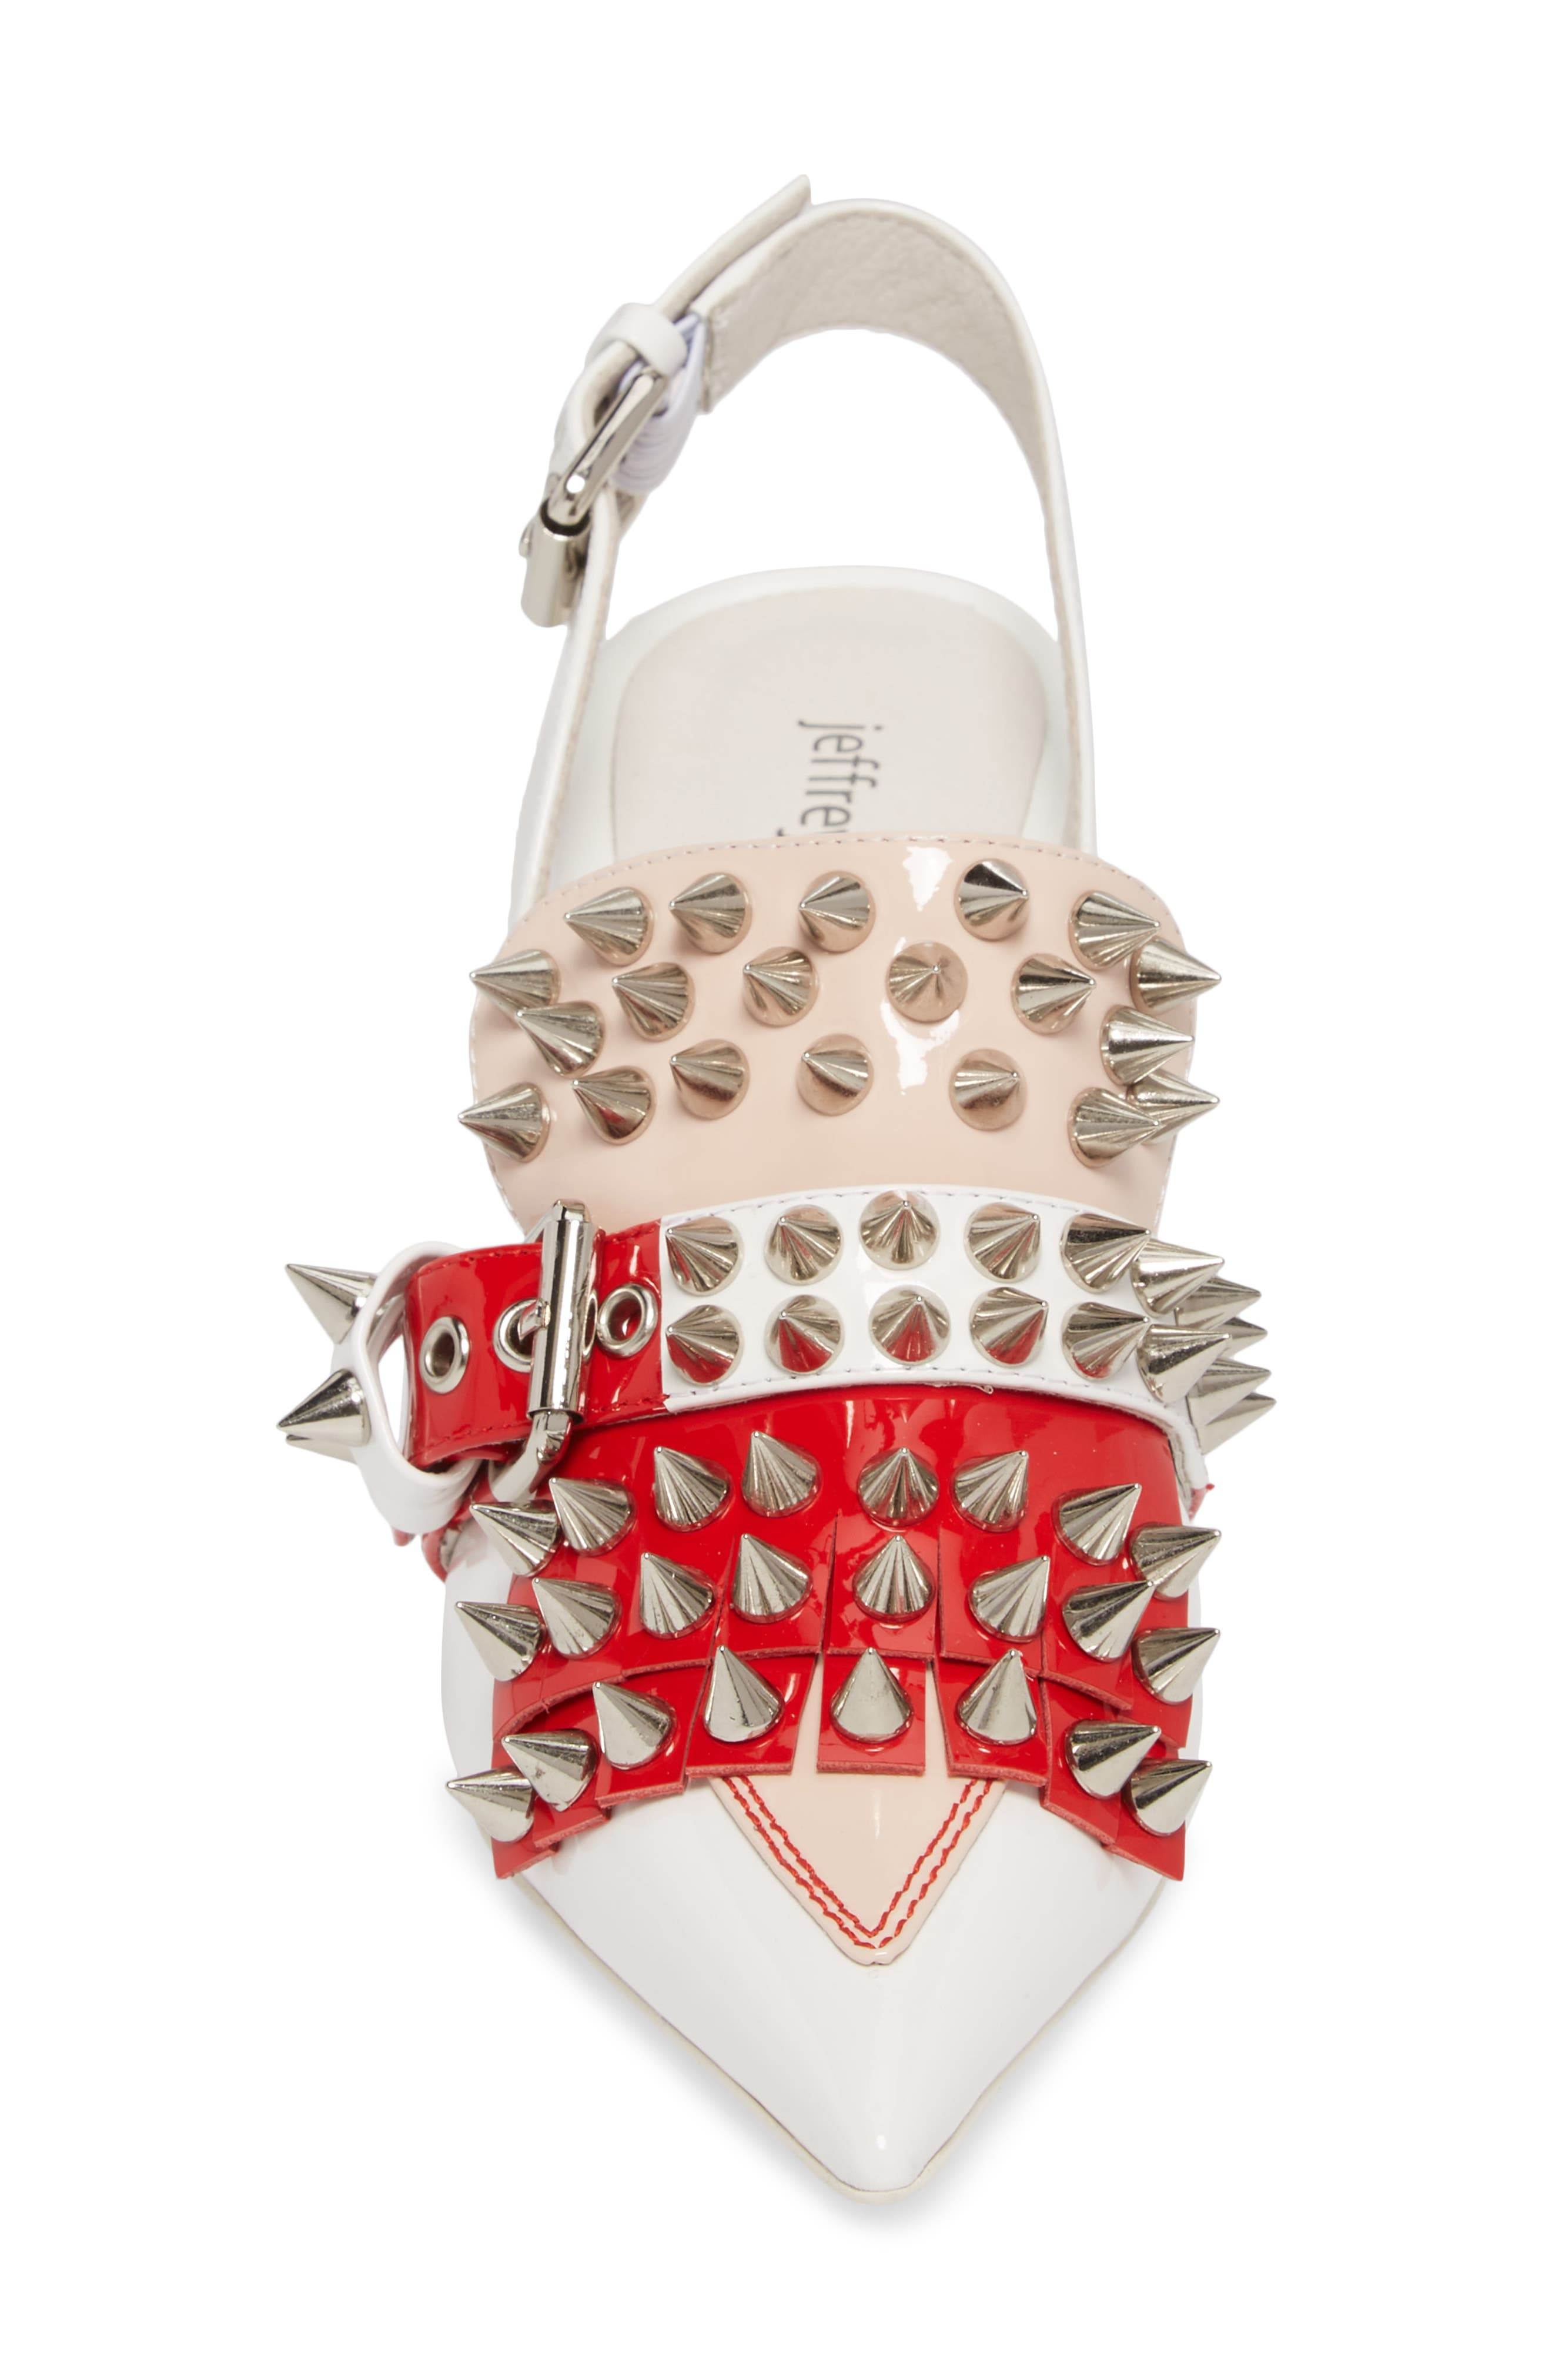 Vicious-2 Studded Loafer Pump,                             Alternate thumbnail 4, color,                             White/ Red/ Pink Patent/ White